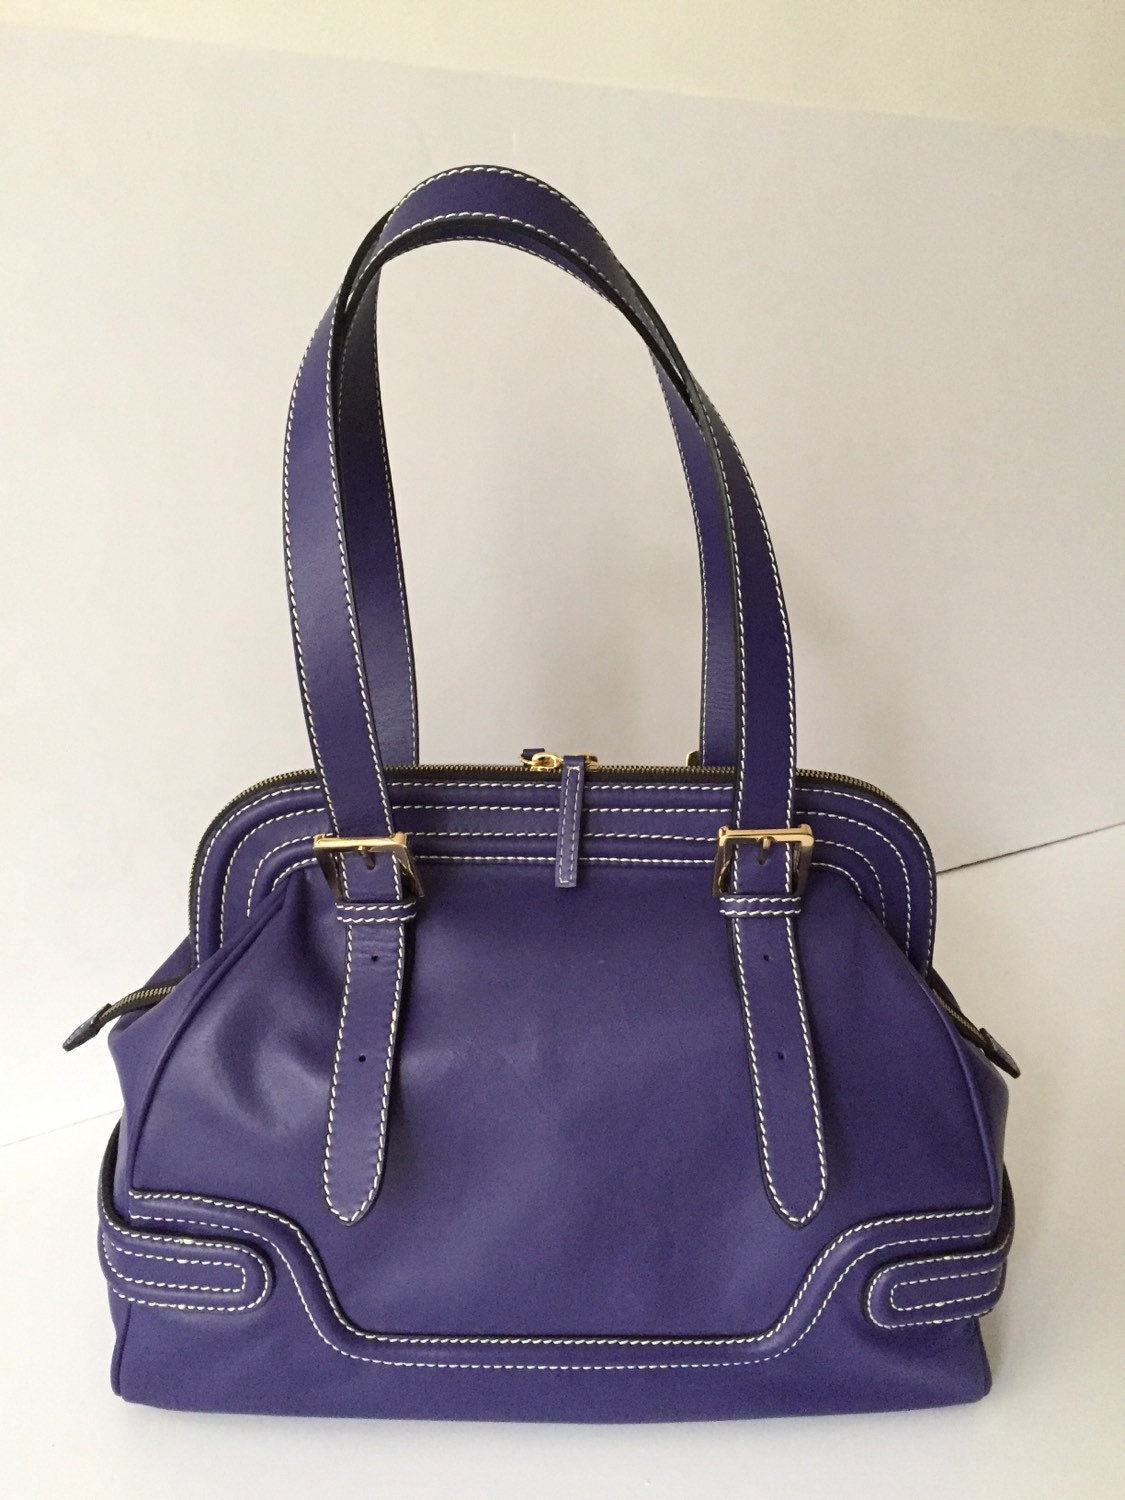 de55fbd20789dd Purple Leather Tote Handbags | Stanford Center for Opportunity ...